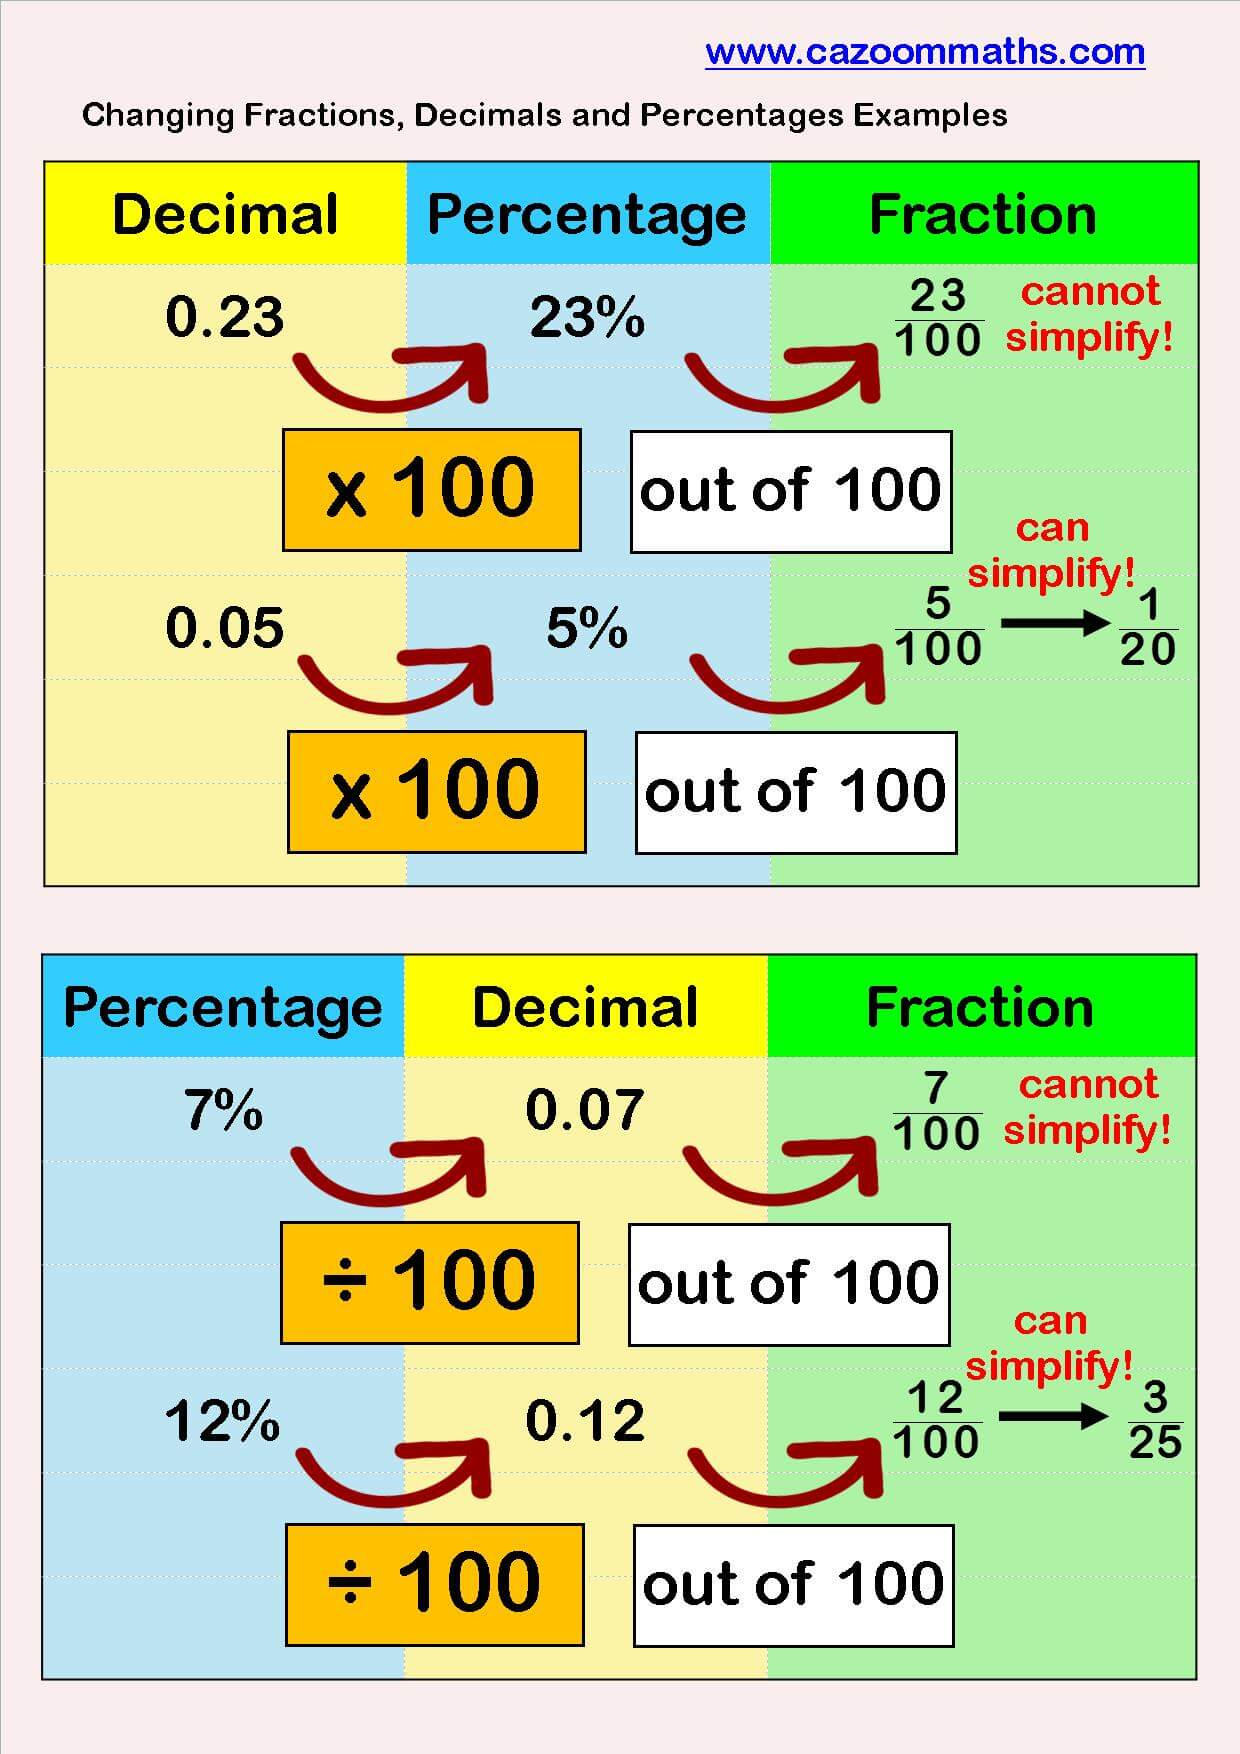 Fraction Decimal Percentage Table